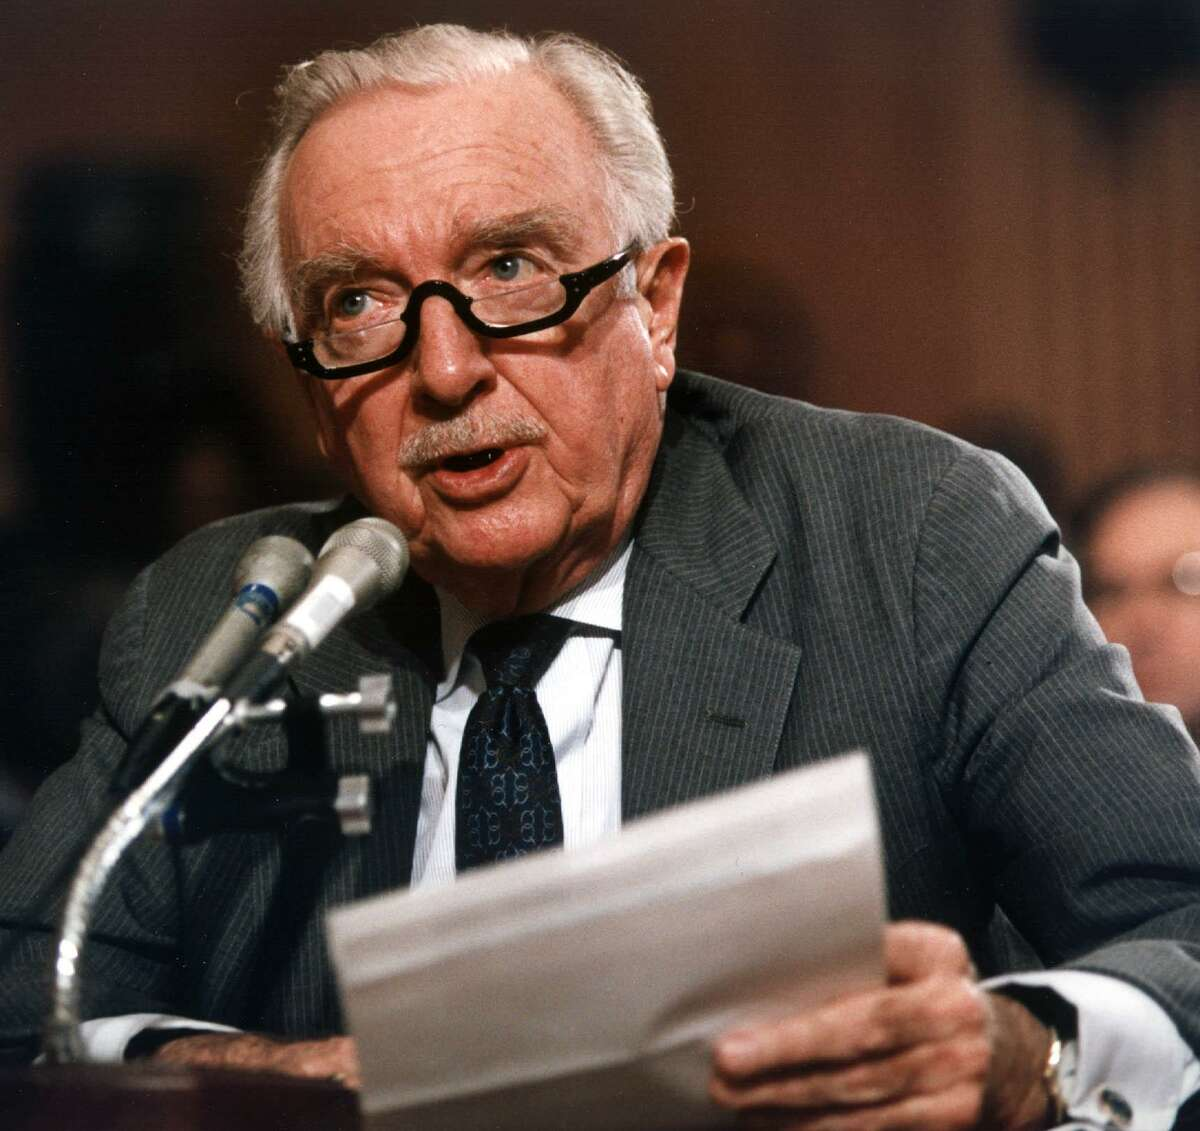 This February 20, 1991 file photograph shows former CBS anchor Walter Cronkite testifying before the US Senate Committee in Washington, DC, on Governmental Affairs concerning the Pentagon rules on media access to the Persian Gulf War.